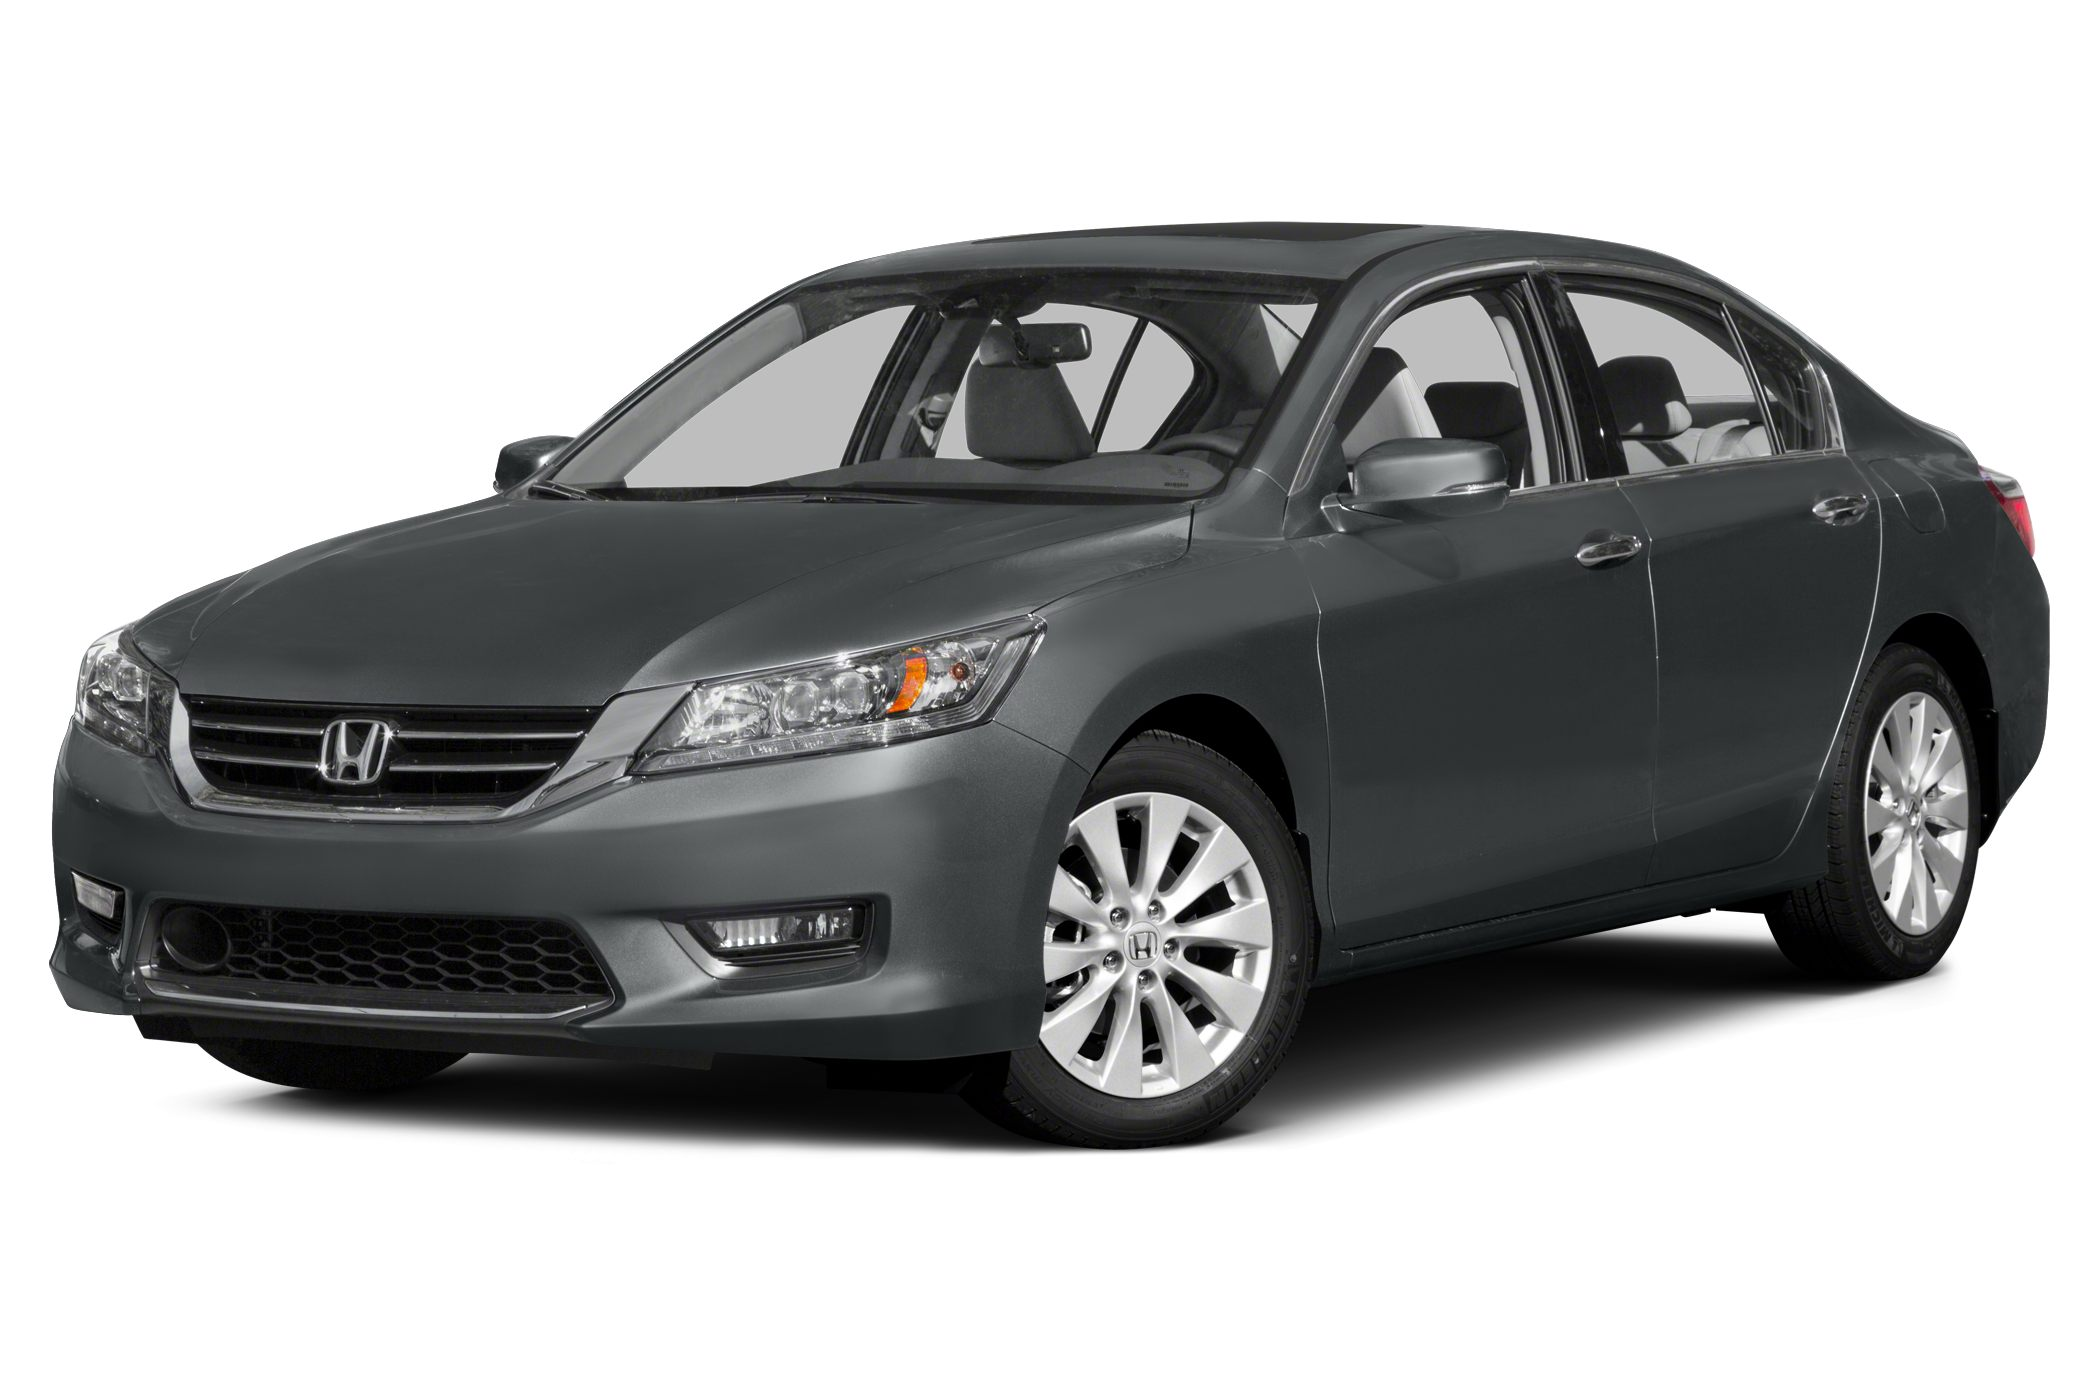 2015 Honda Accord Touring Sedan for sale in Tallahassee for $34,450 with 2 miles.